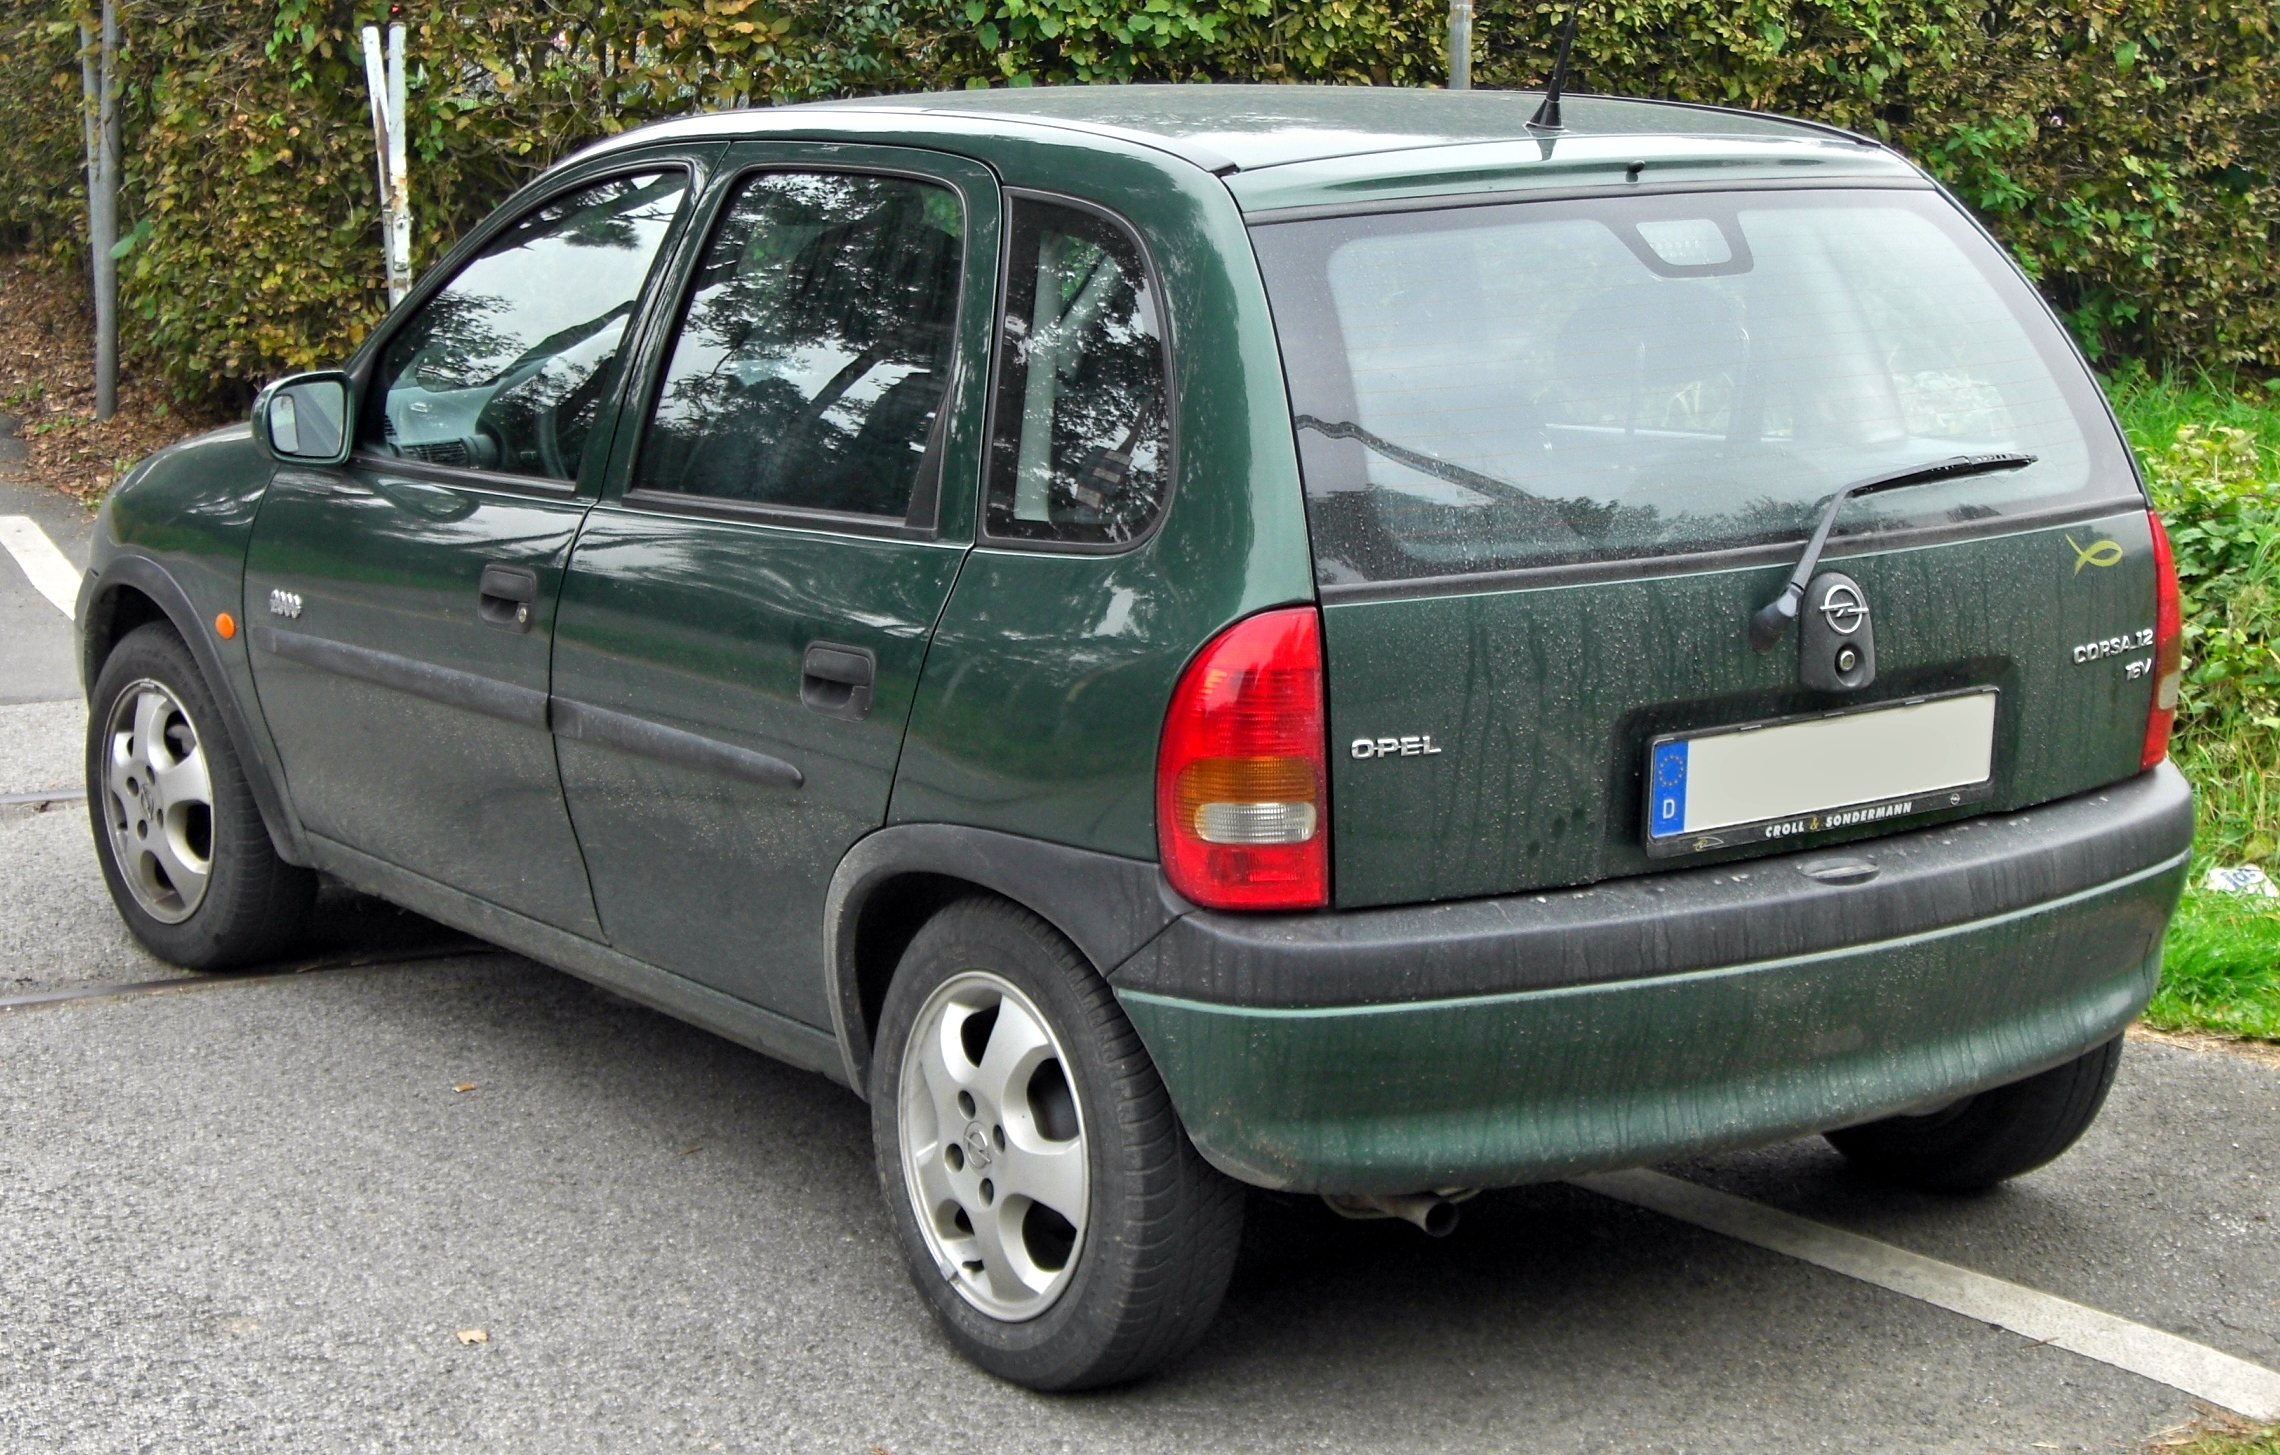 File:Opel Corsa B 1.2 16V Edition 2000 5-Türer Facelift rear.JPG